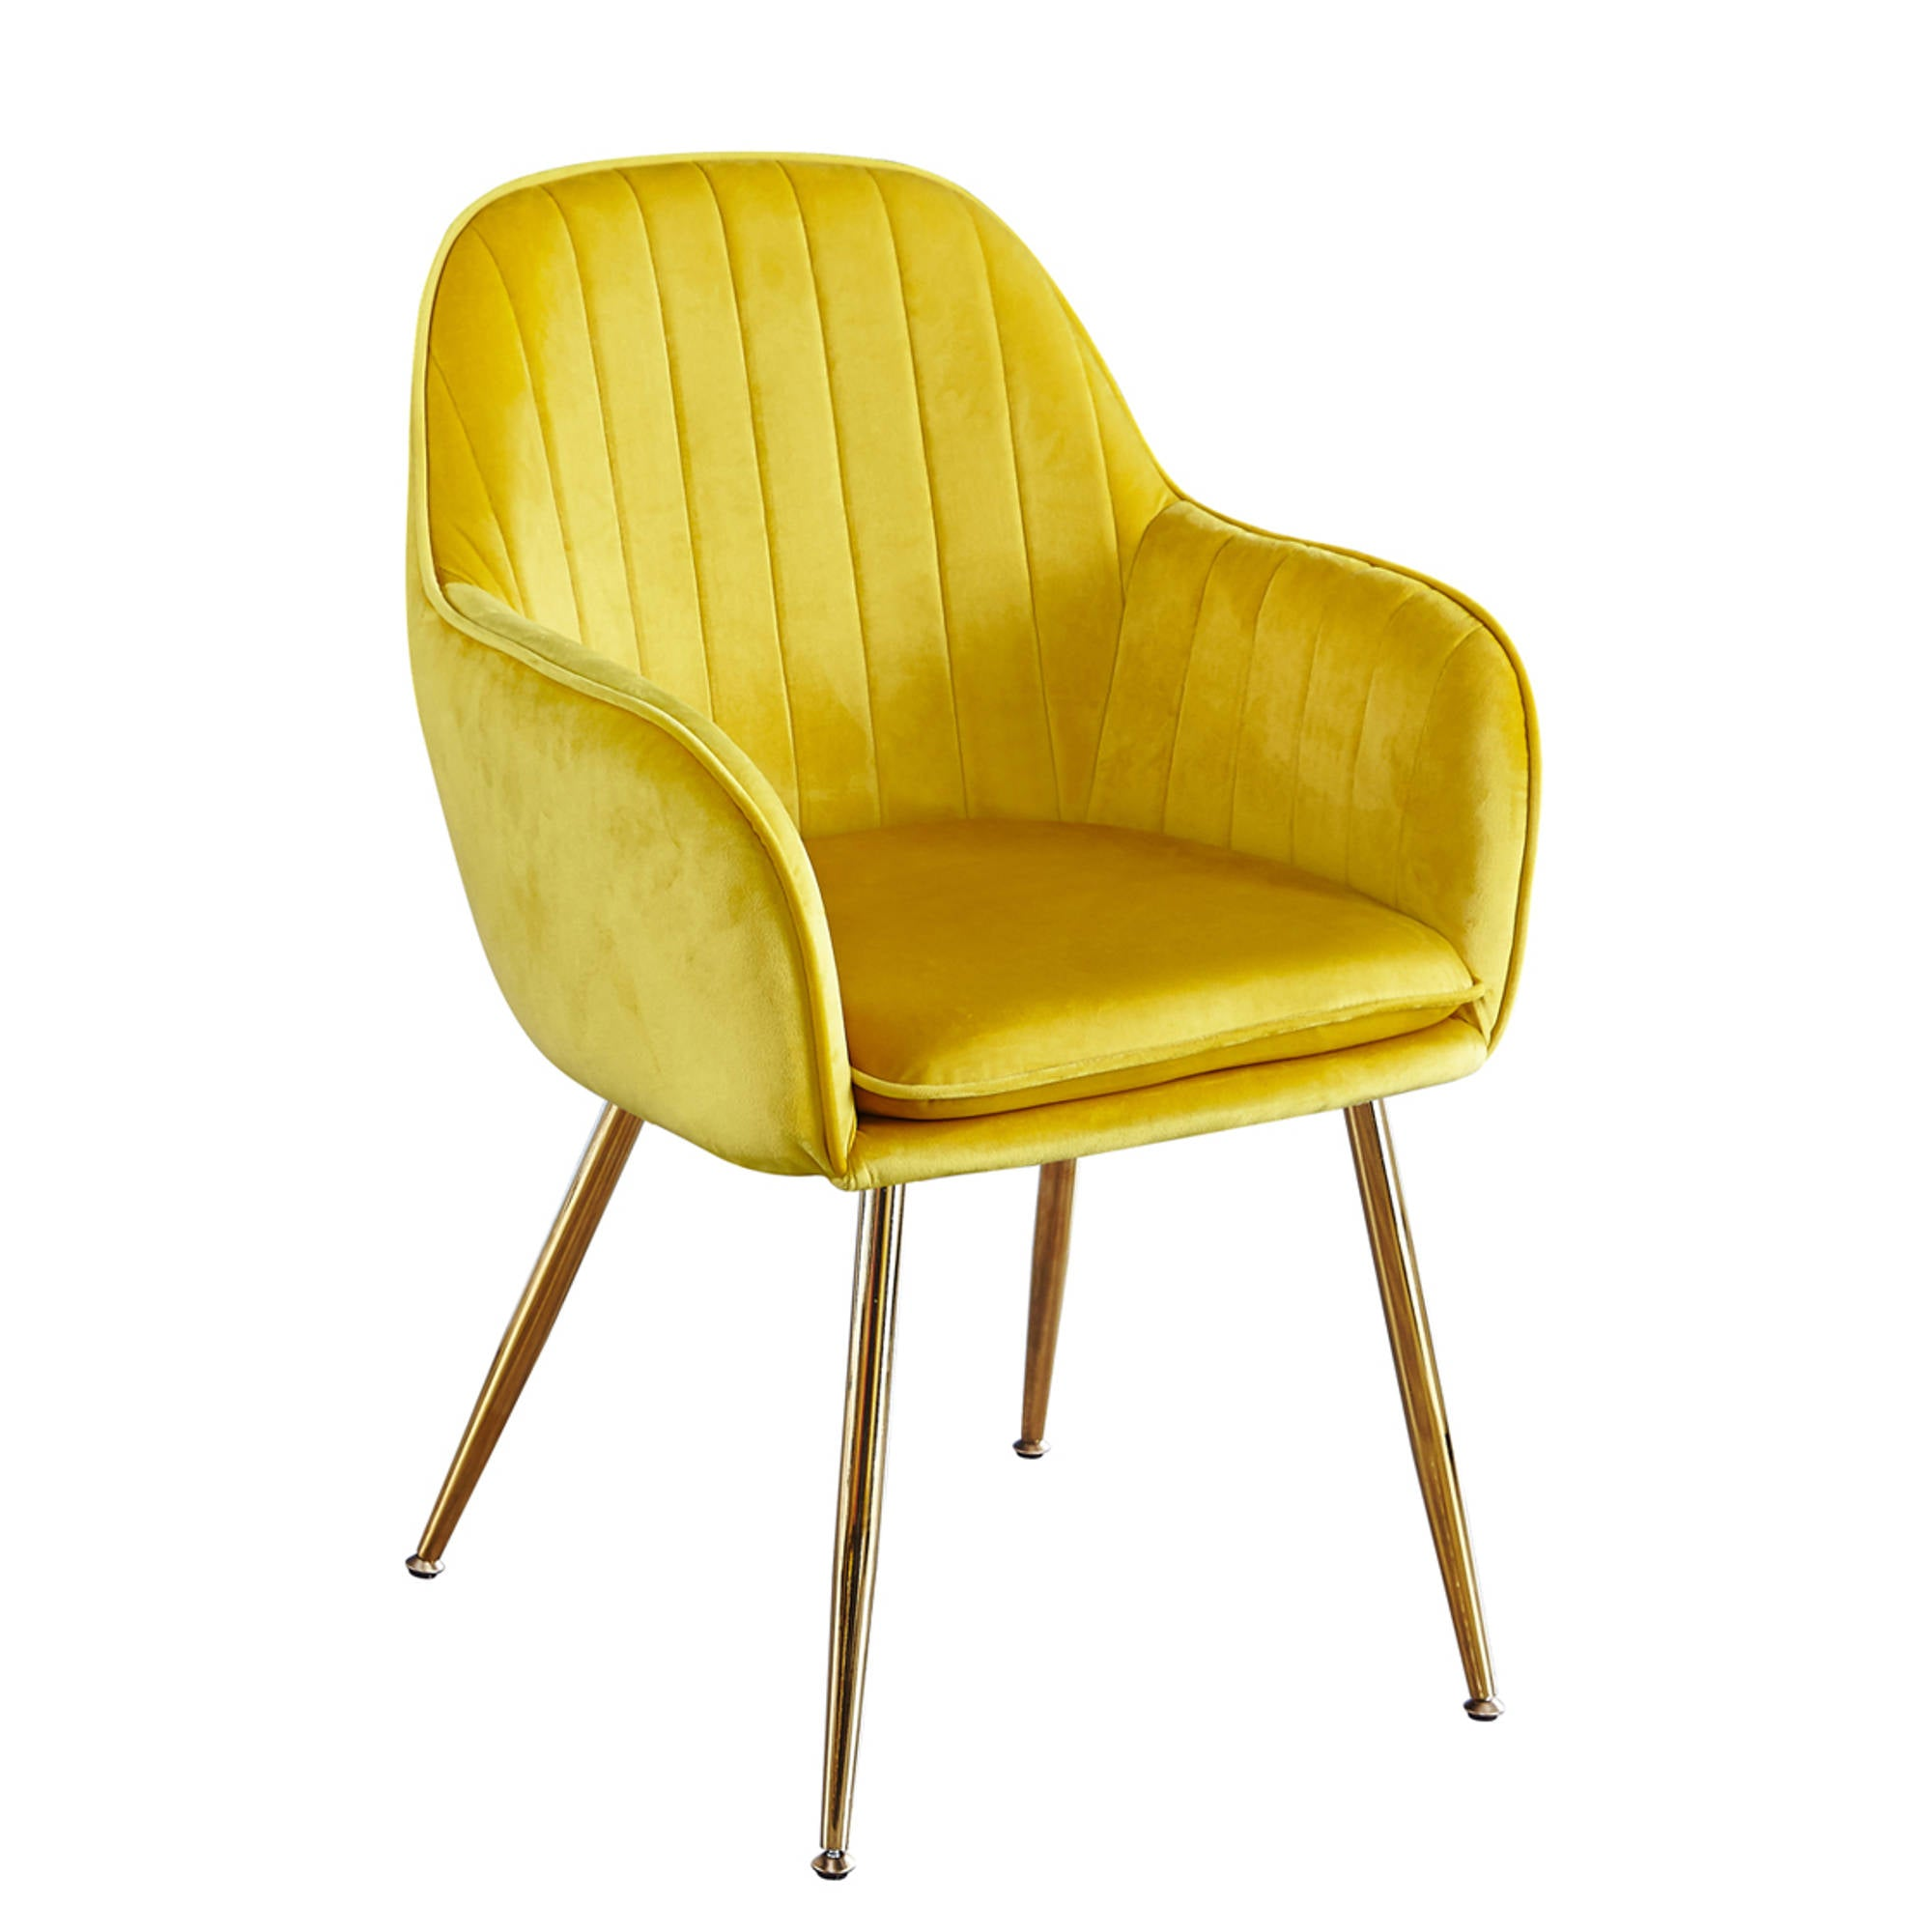 Lares Chairs in Ochre Yellow